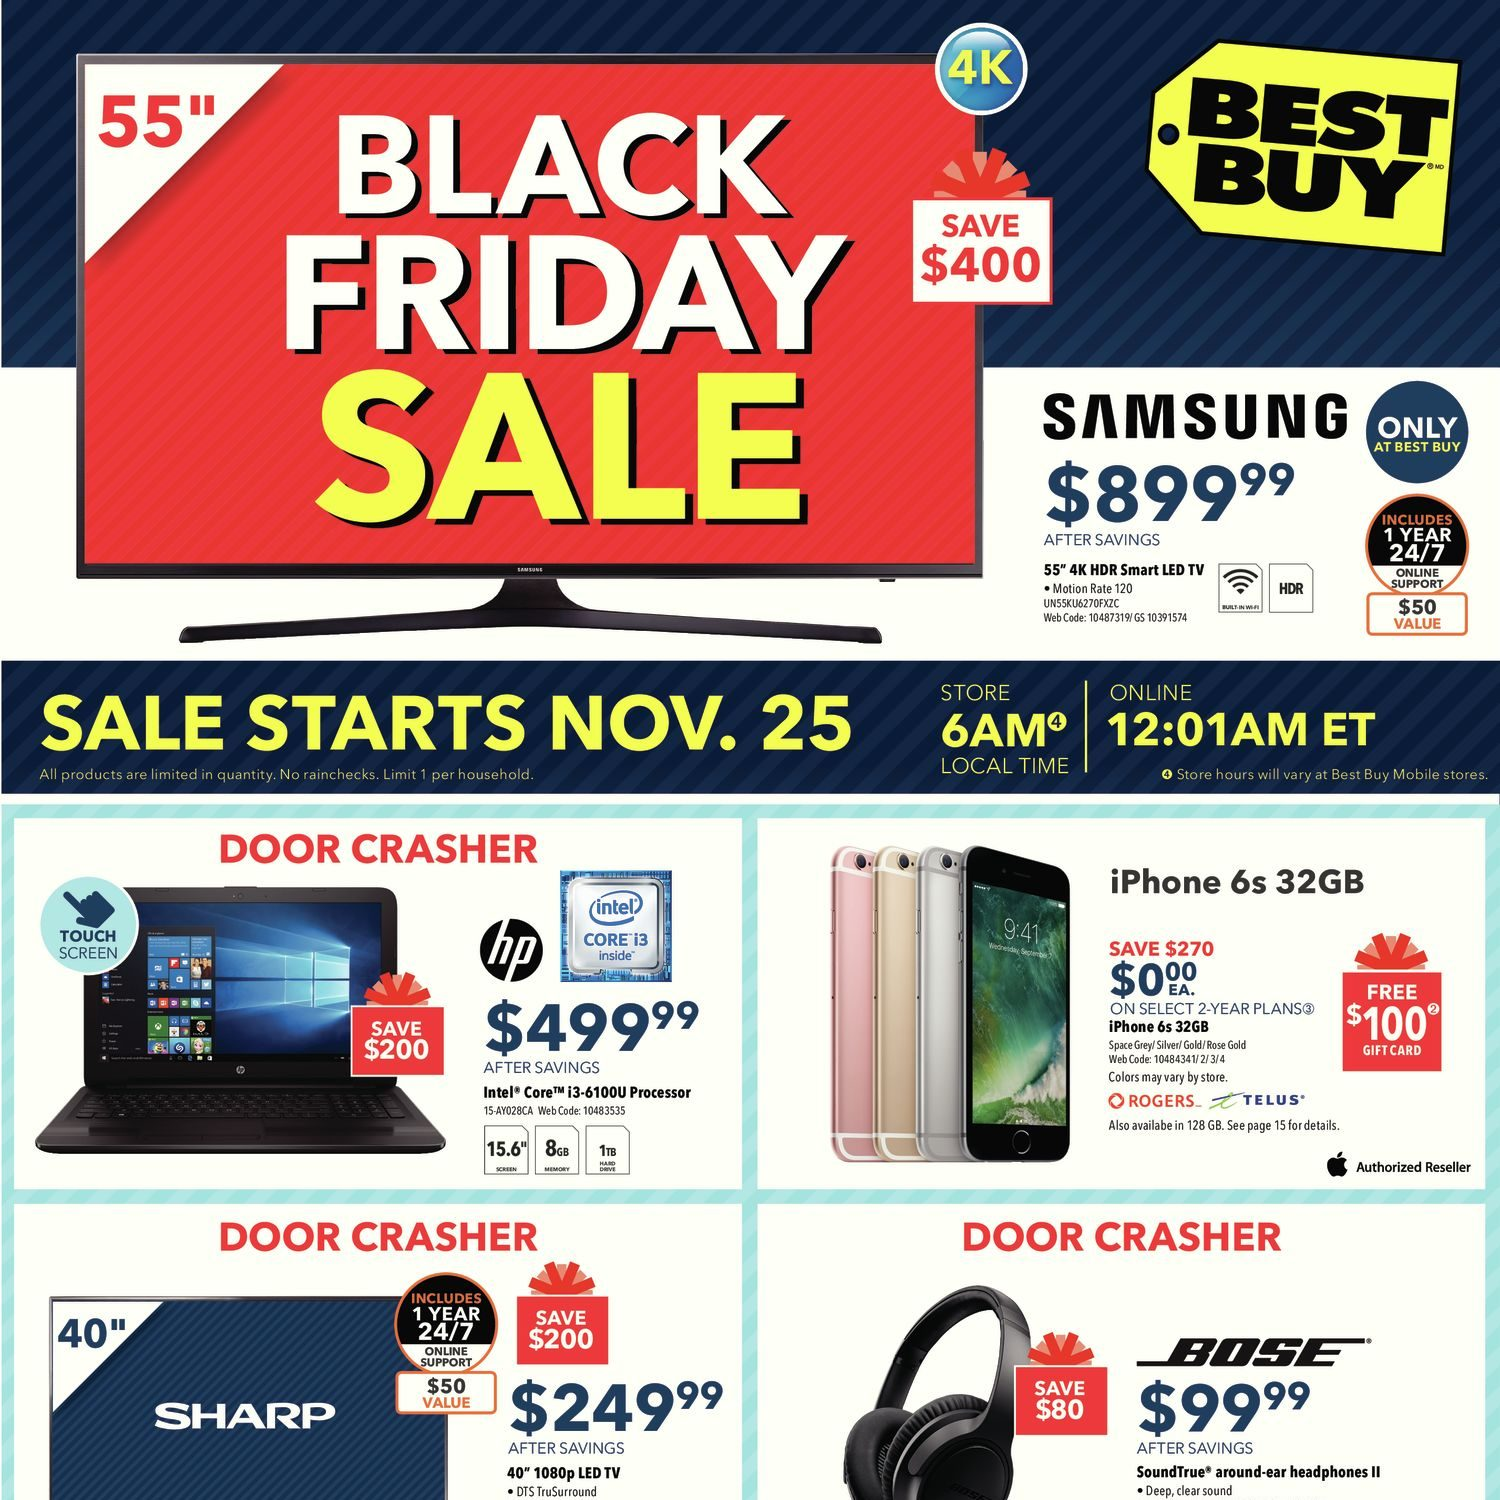 Best Buy Weekly Flyer - Weekly - Black Friday Sale - Nov 25